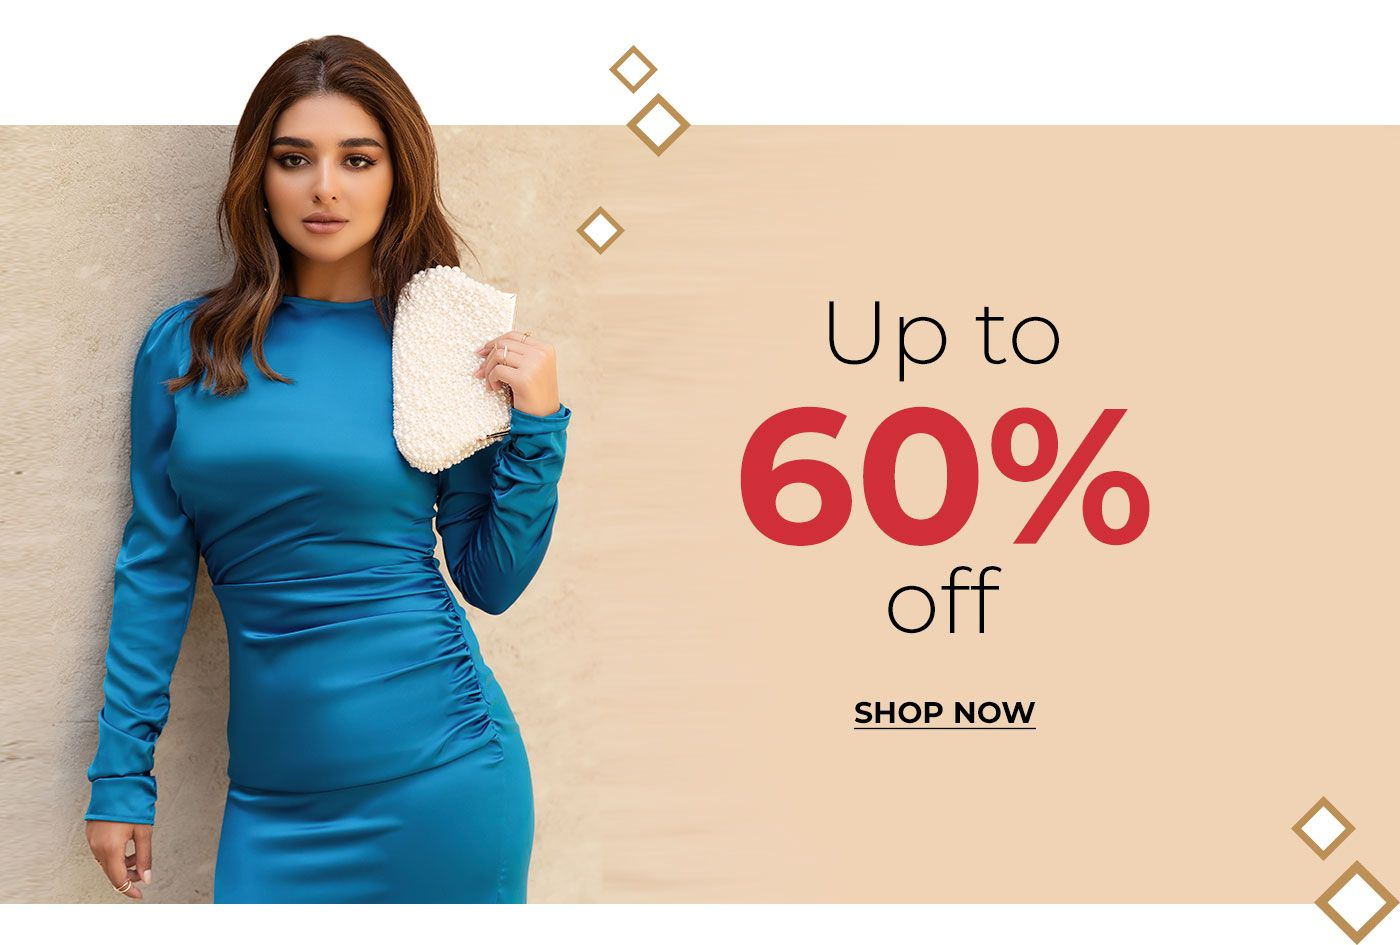 Styli   Up to 60% OFF On Women Collection + 10% Extra OFF With Code: SHYLEE  >> Shop Now   shyleeshop